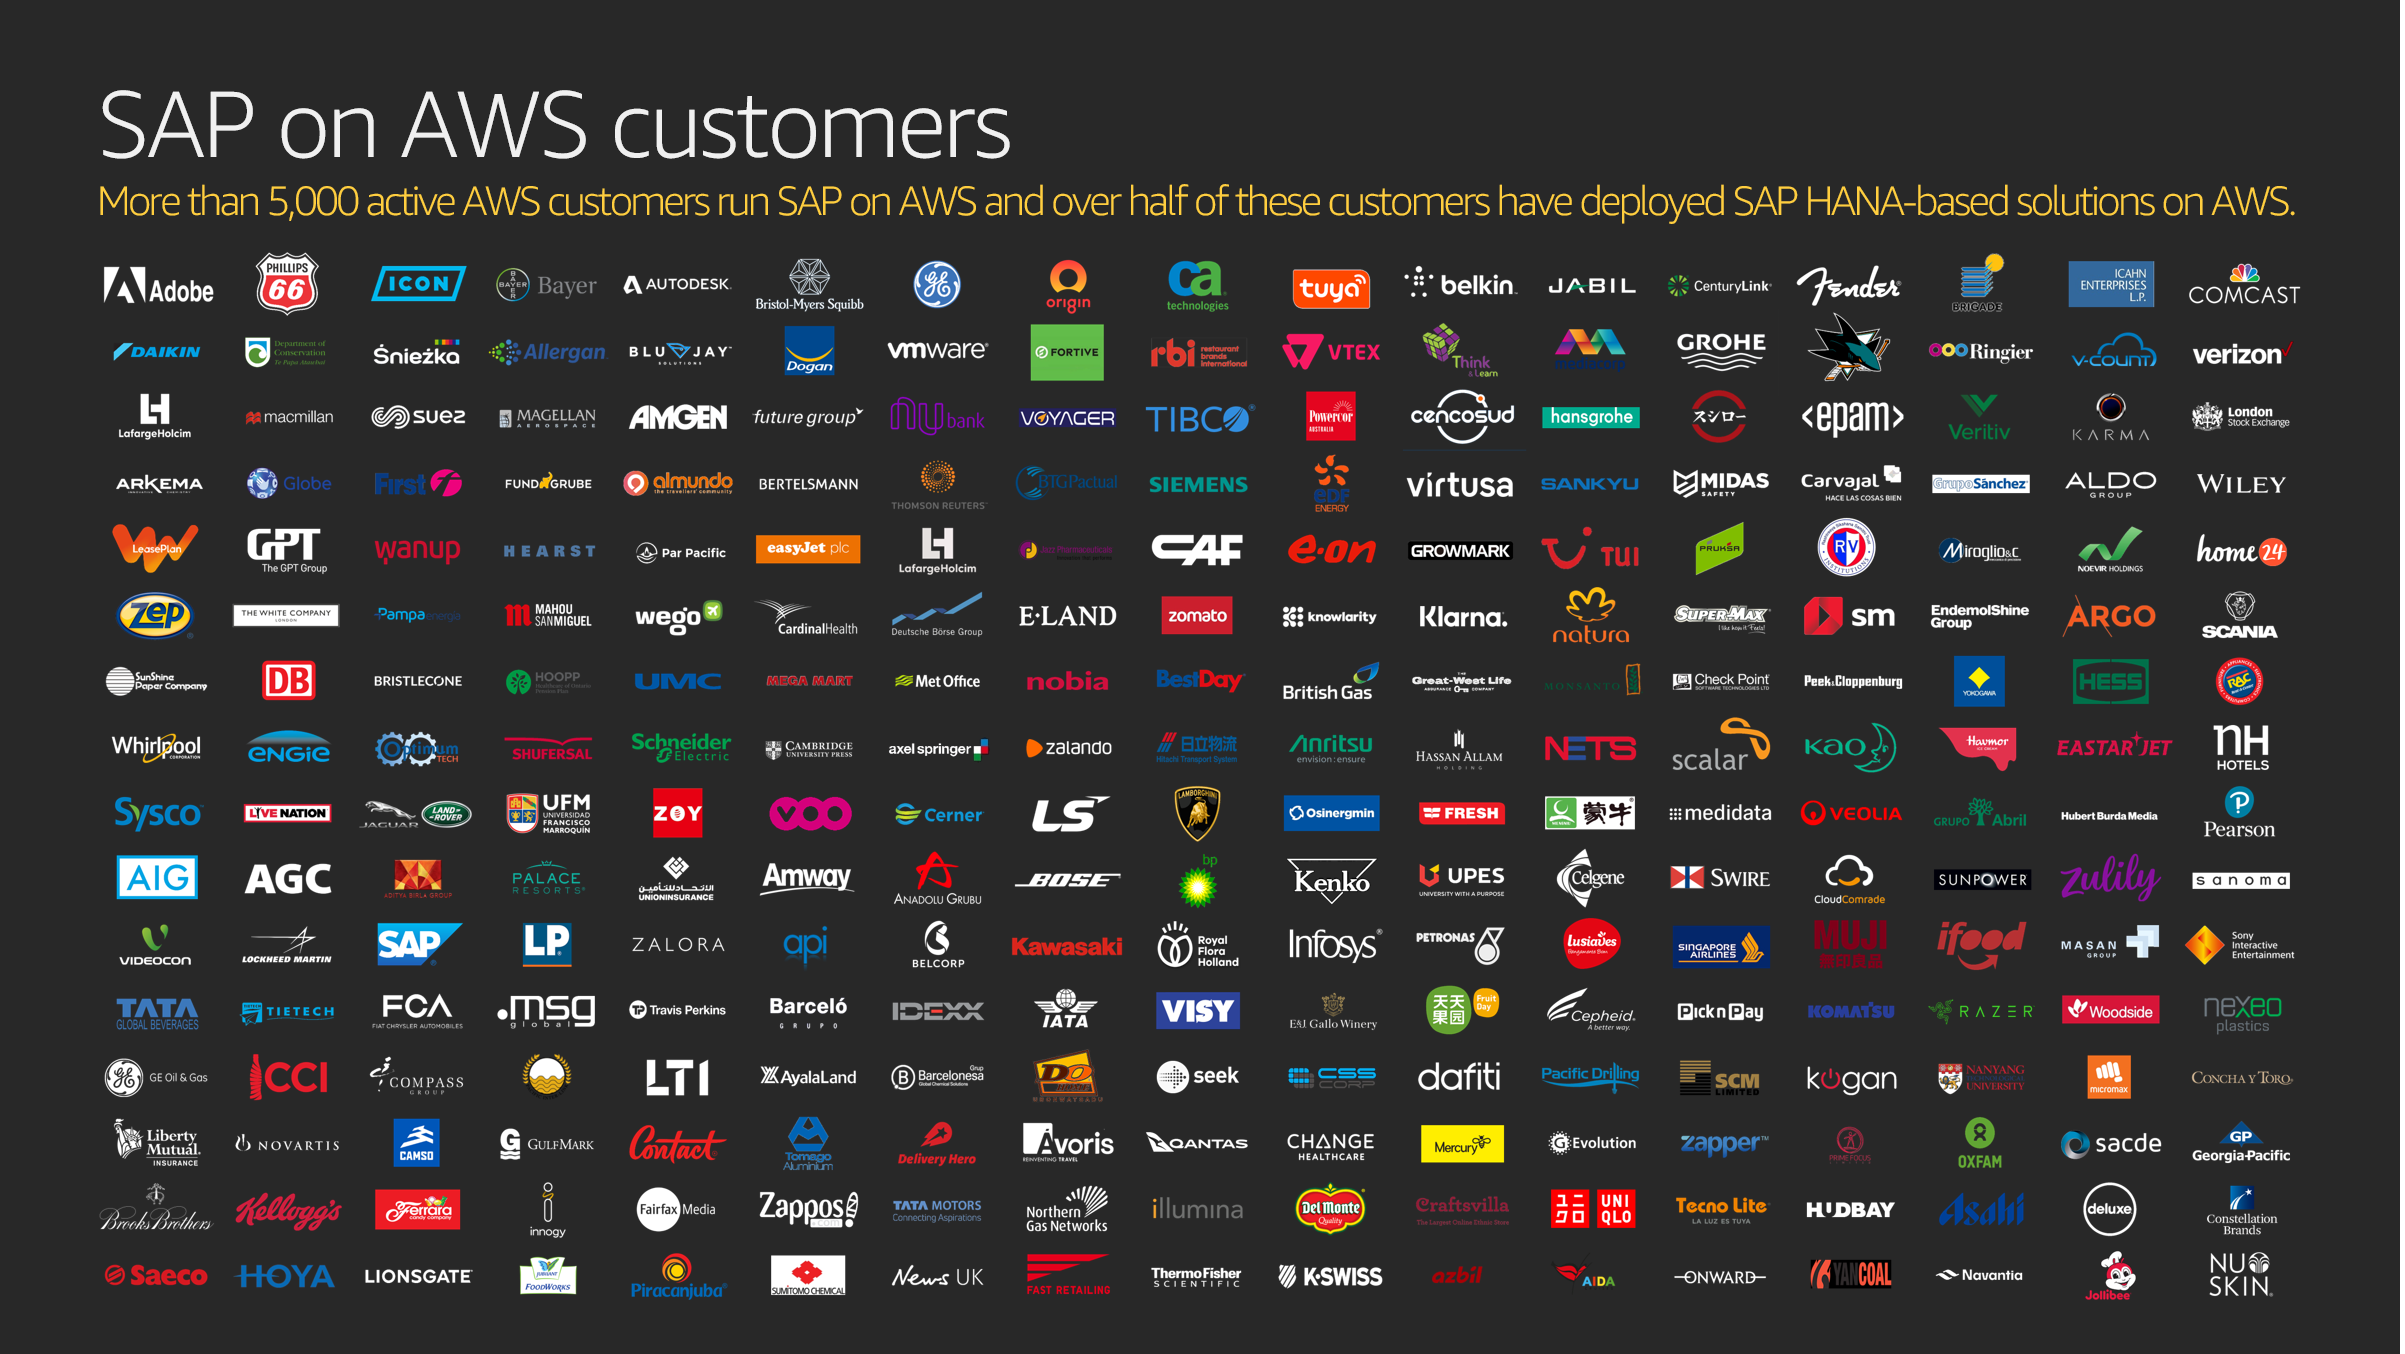 Image showing SAP on AWS customer logos. More than 5,000 active AWS customers run SAP on AWS and over half of these customers have deployed SAP HANA-based solutions on AWS.